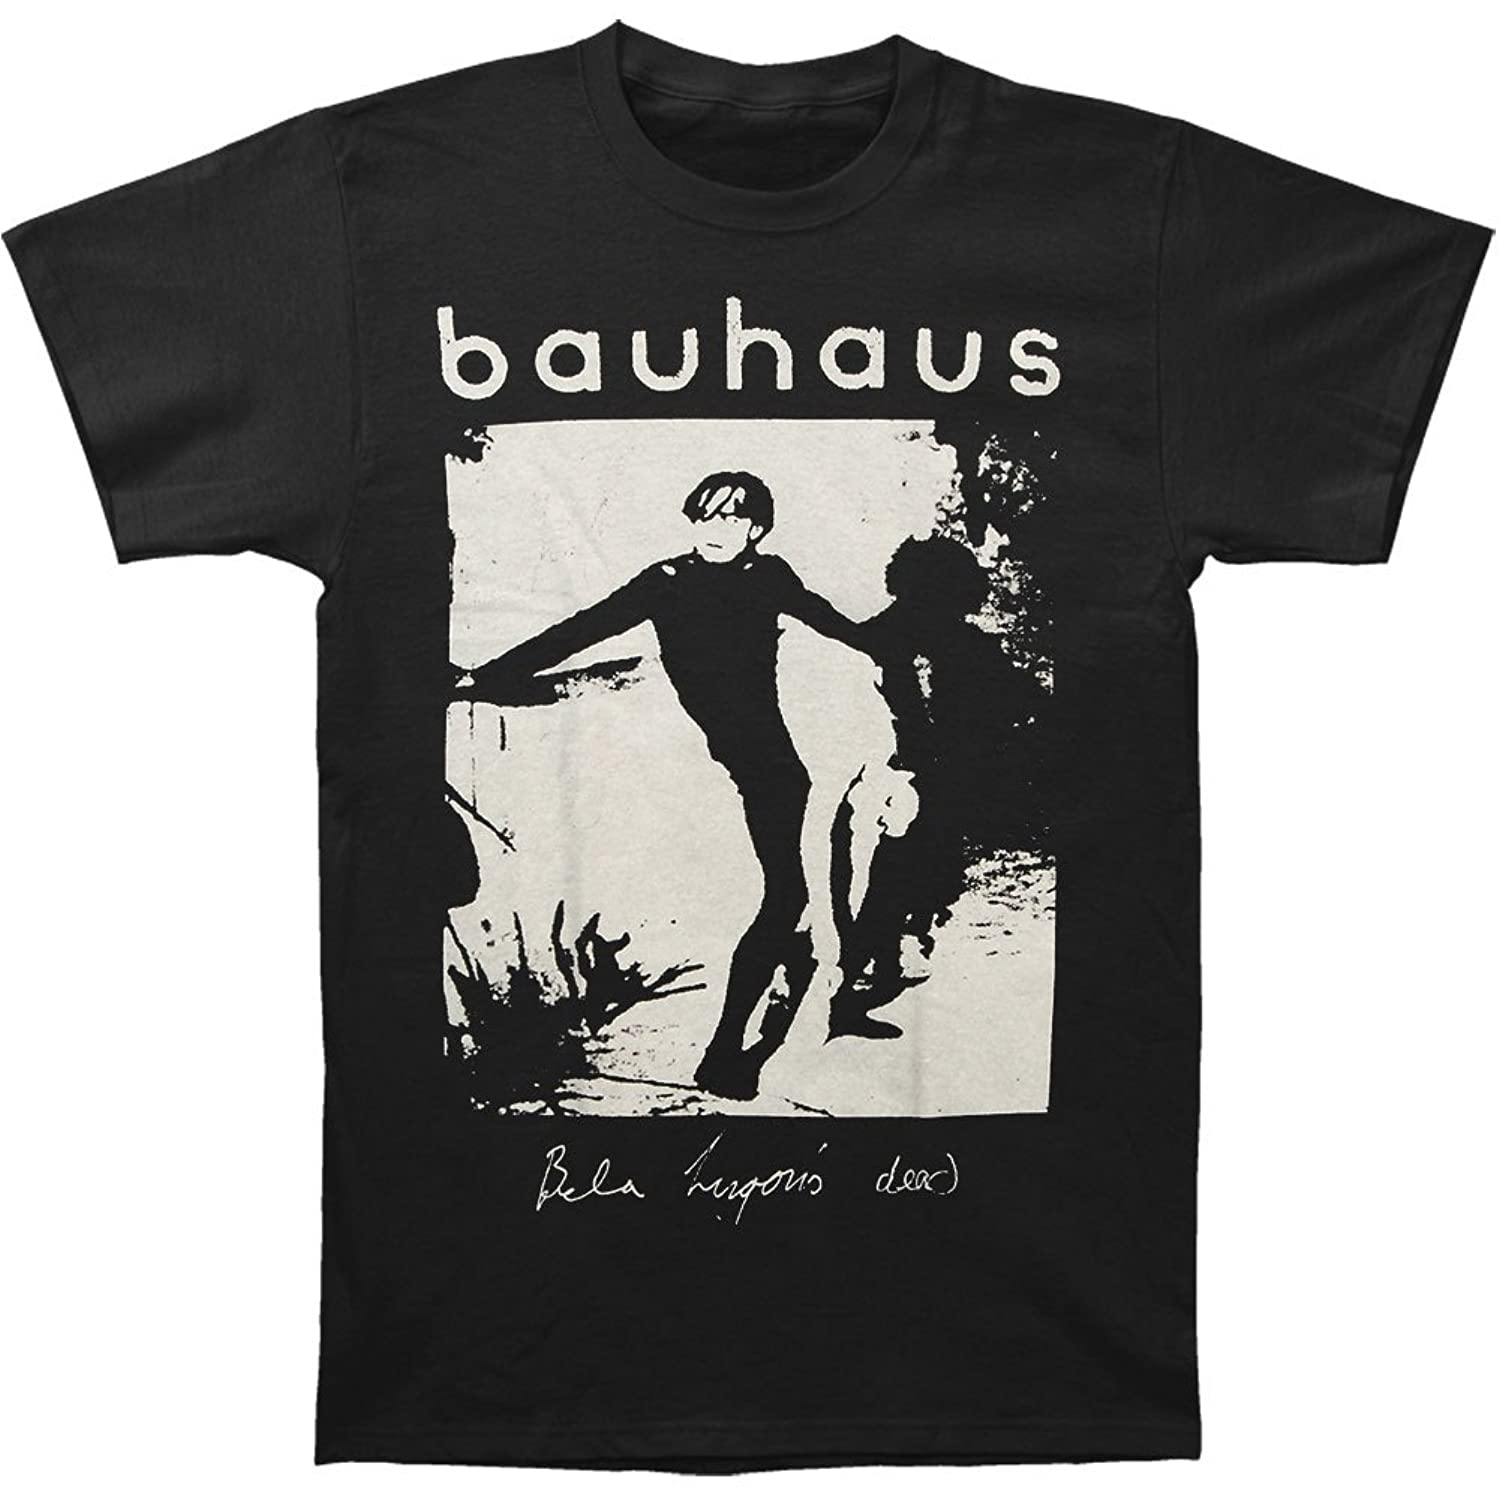 vinyl bauhaus trendy bauhaus sheus in parties tshirt with vinyl bauhaus bauhaus the interview. Black Bedroom Furniture Sets. Home Design Ideas